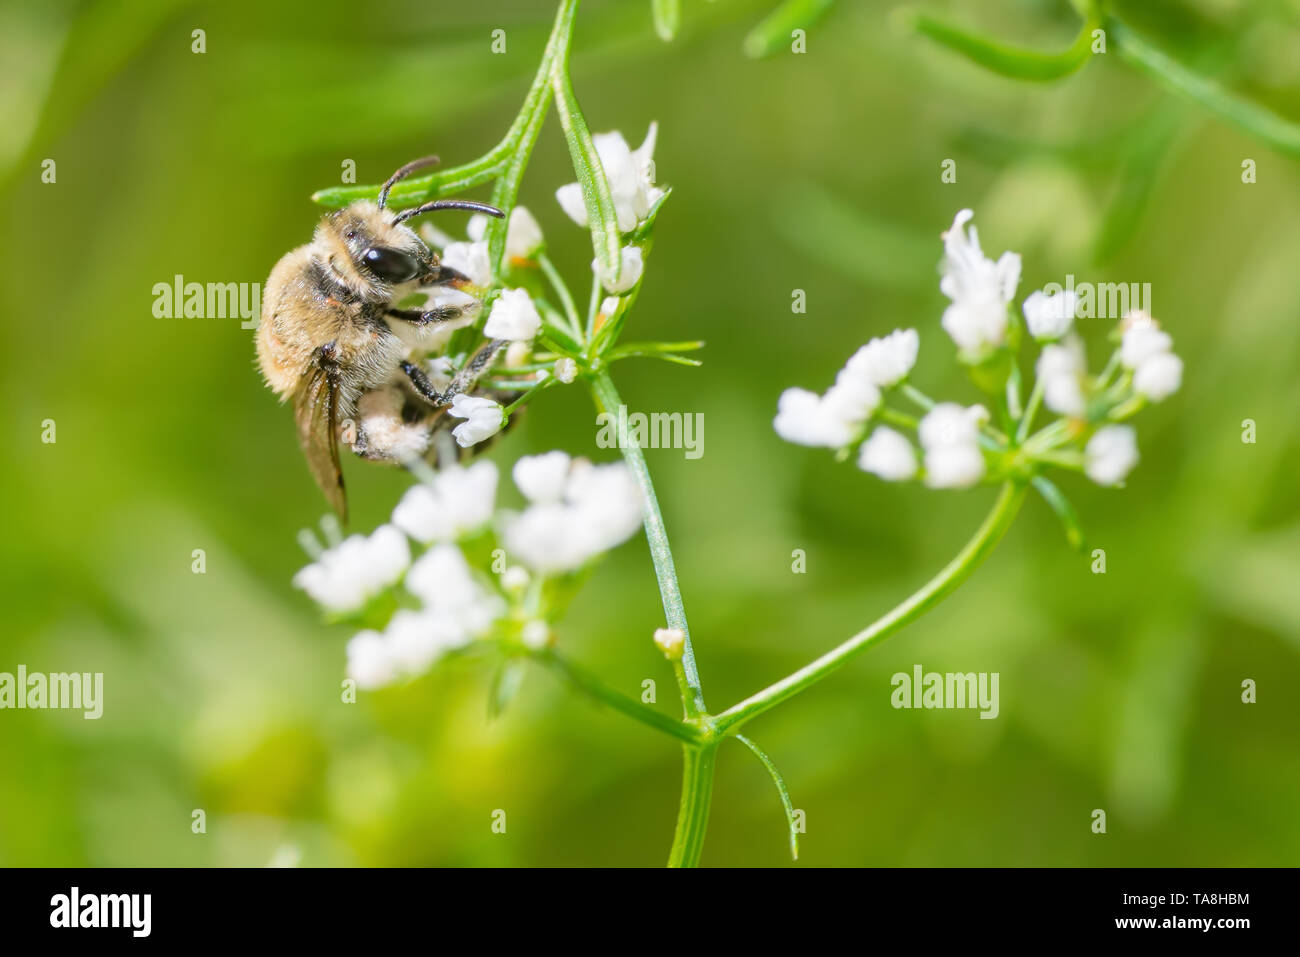 Bumble bee species feeding / pollinating on a white wildflower in Minnesota - Stock Image